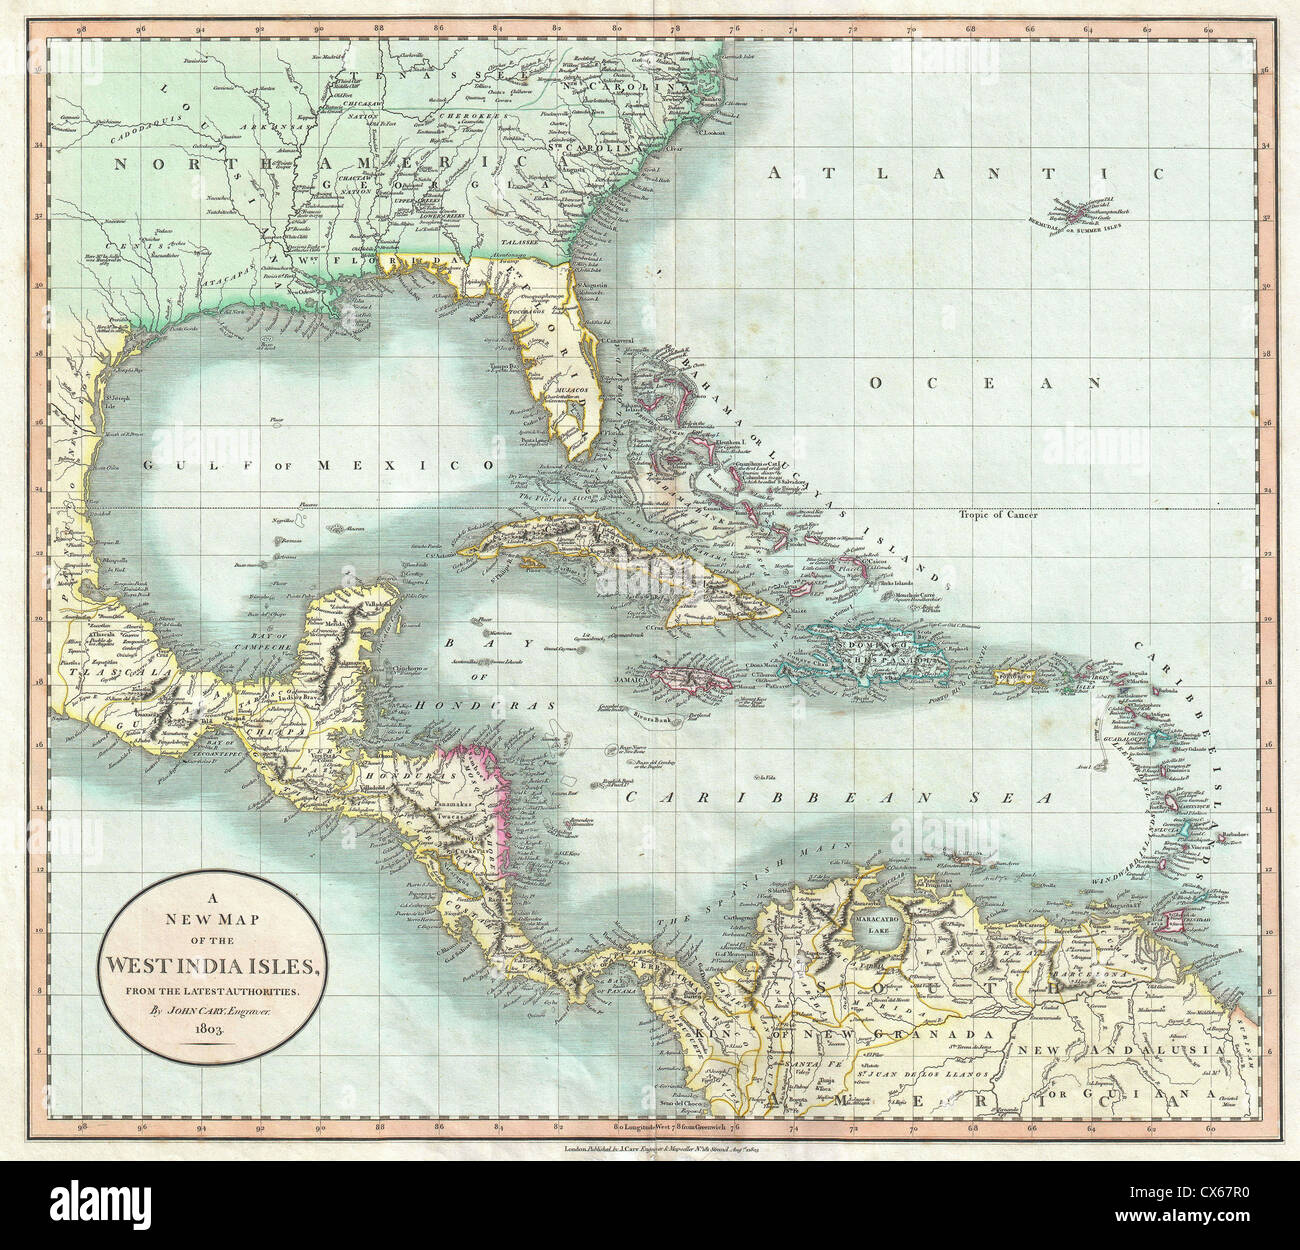 1803 Cary Map of Florida, Central America, the Bahamas, and the West Indies - Stock Image